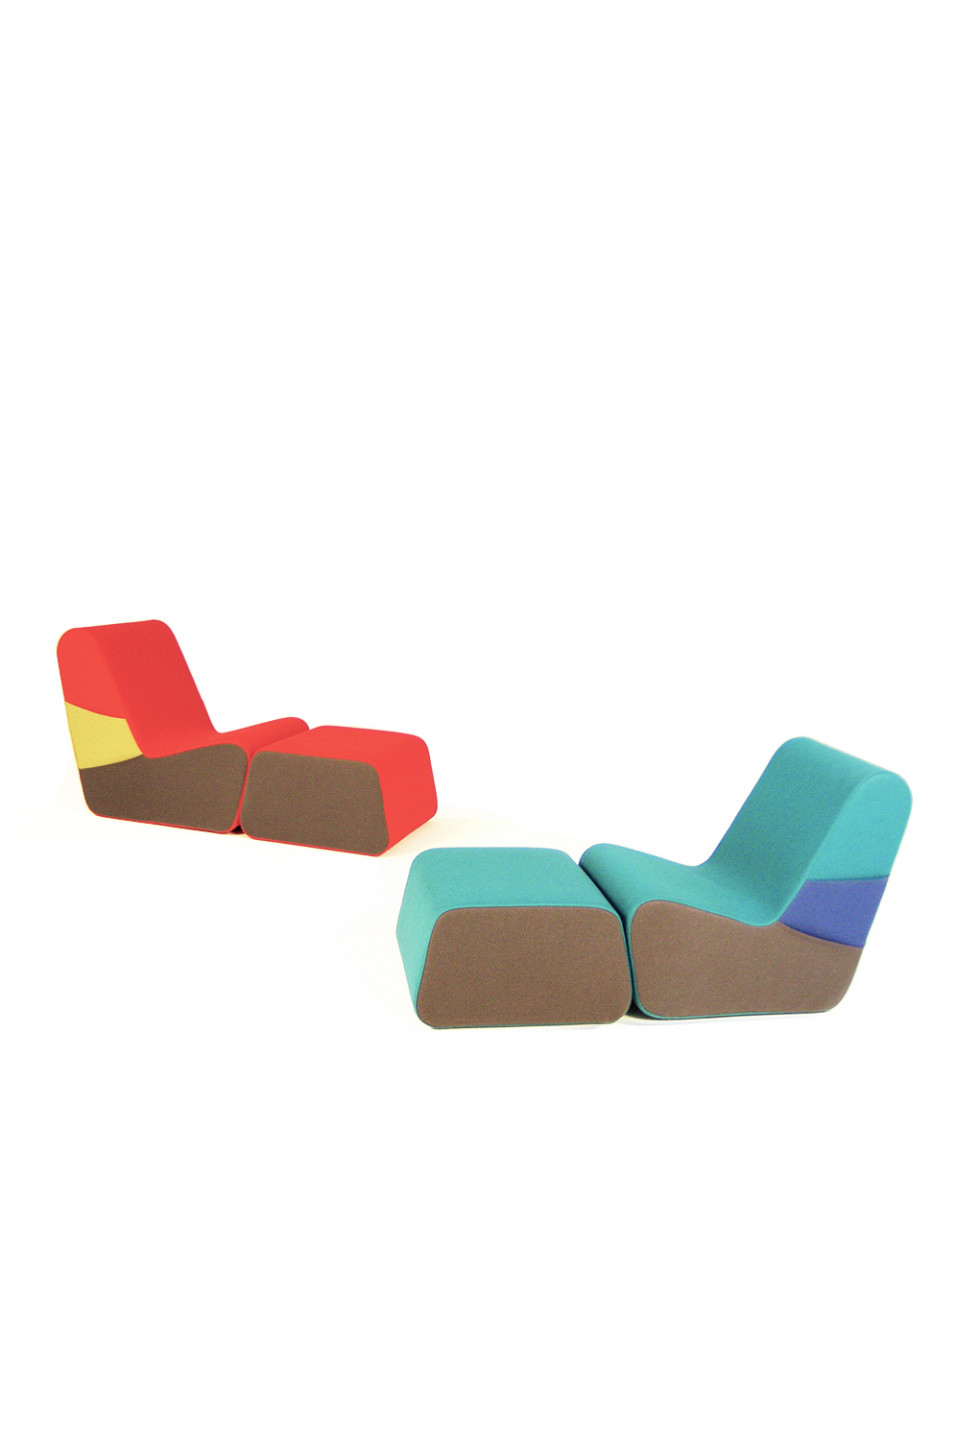 Blanka chair • large and medium